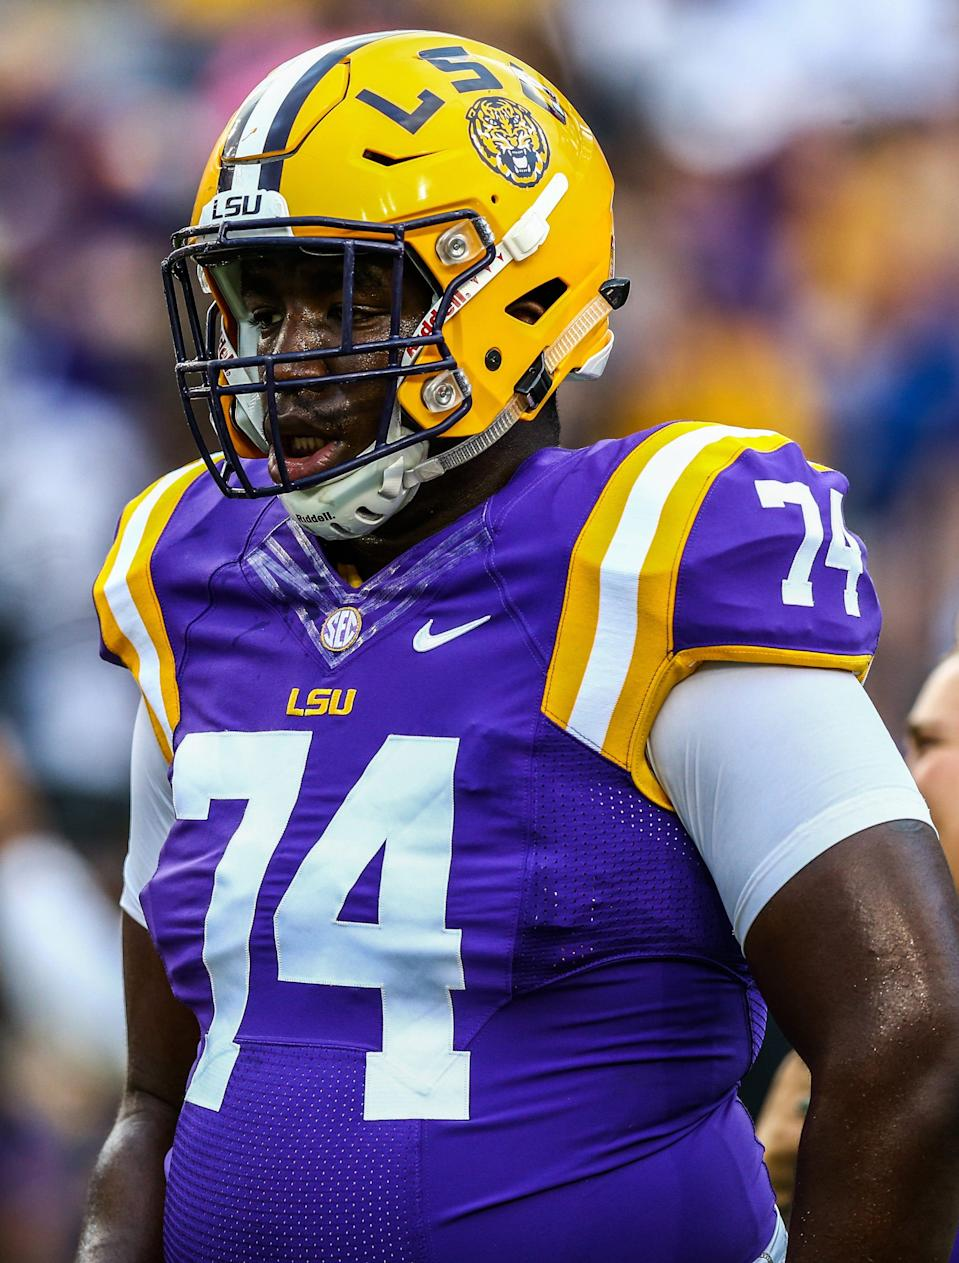 Apr 22, 2017; Baton Rouge, LA, USA; Louisiana State Tigers offensive lineman Willie Allen (74) warming up before the annual Louisiana State Tigers purple-gold spring game at Tiger Stadium. Purple team won 7-3. Mandatory Credit: Stephen Lew-USA TODAY Sports